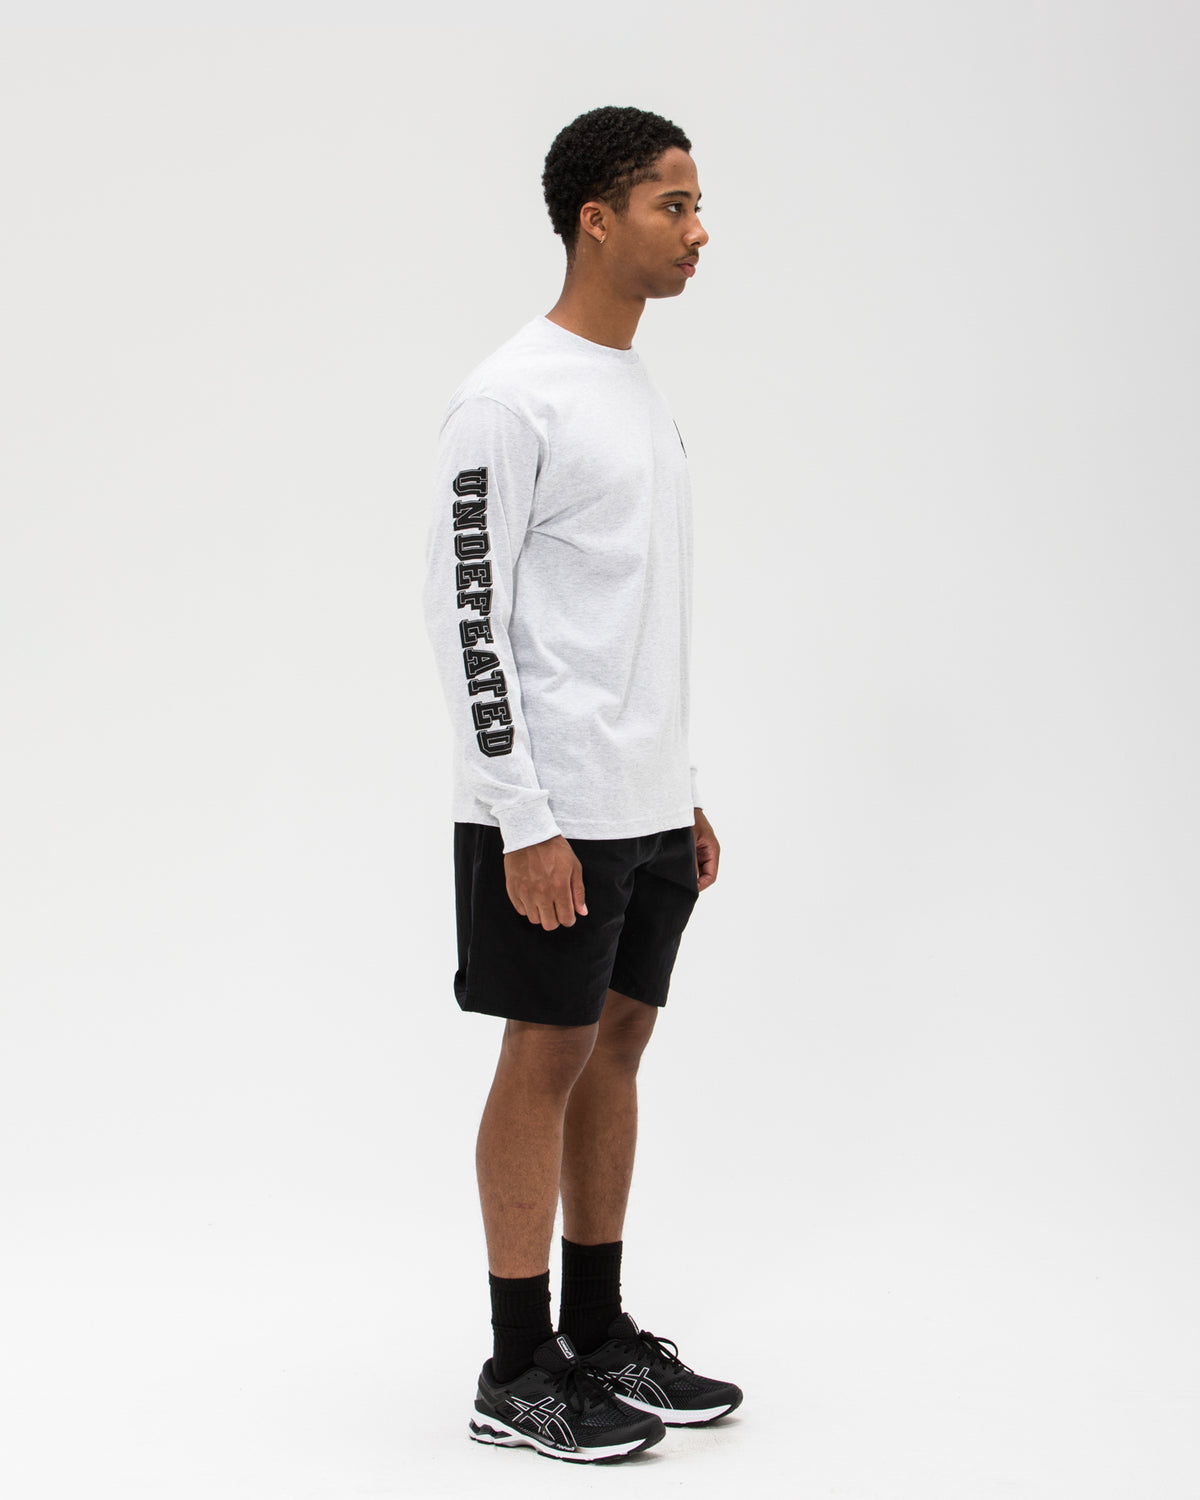 UNDEFEATED BLOCK L/S TEE